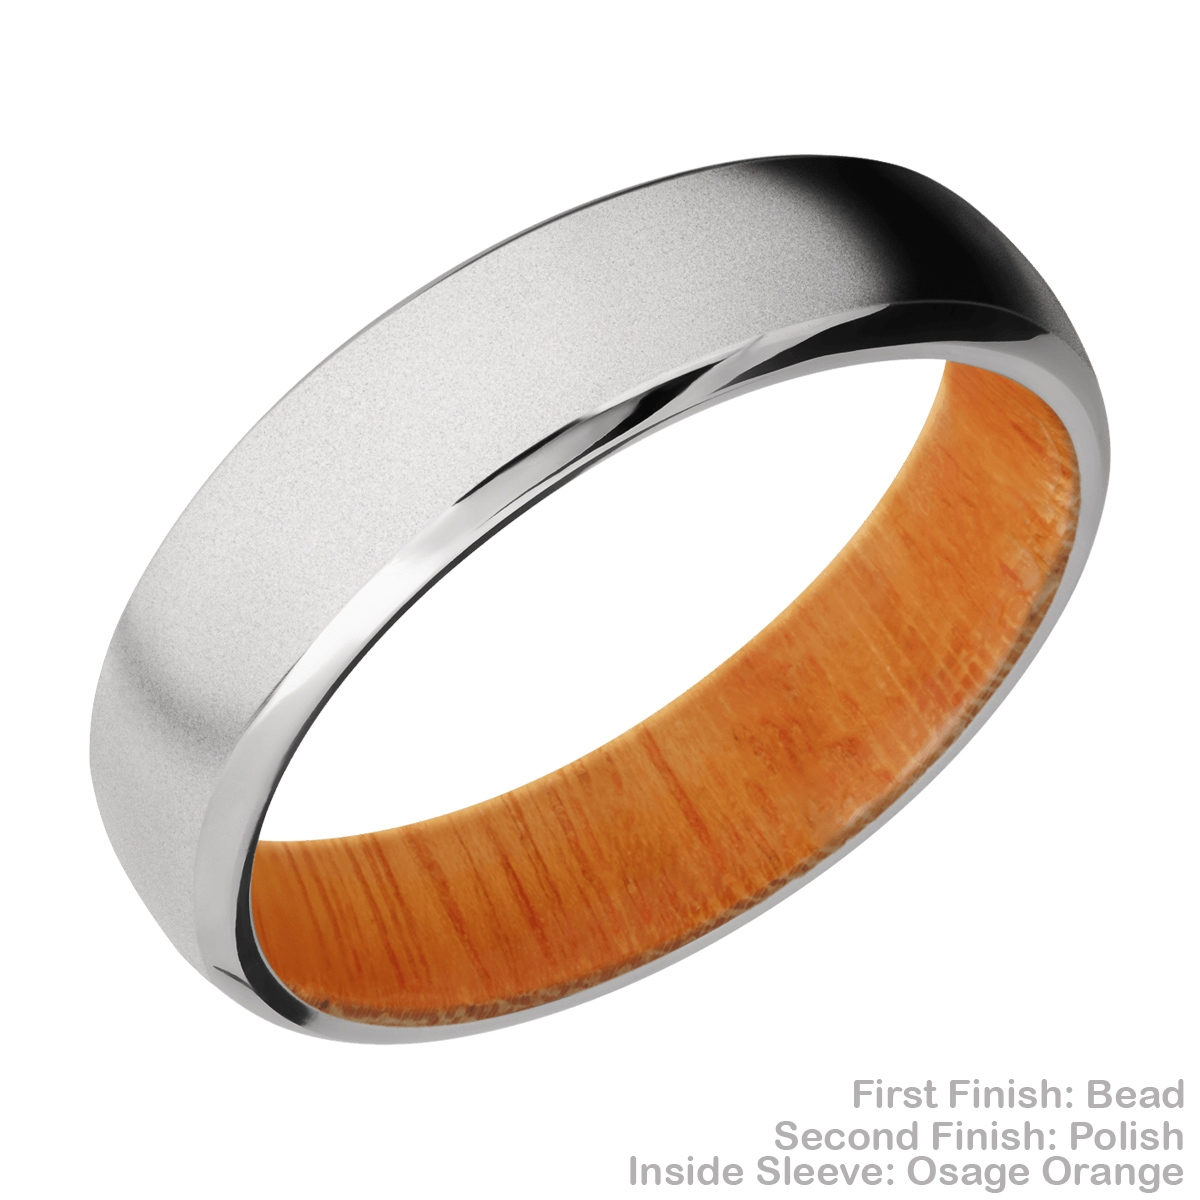 Lashbrook HWSLEEVECC6DB Cobalt Chrome and Hardwood Wedding Ring or Band Alternative View 5